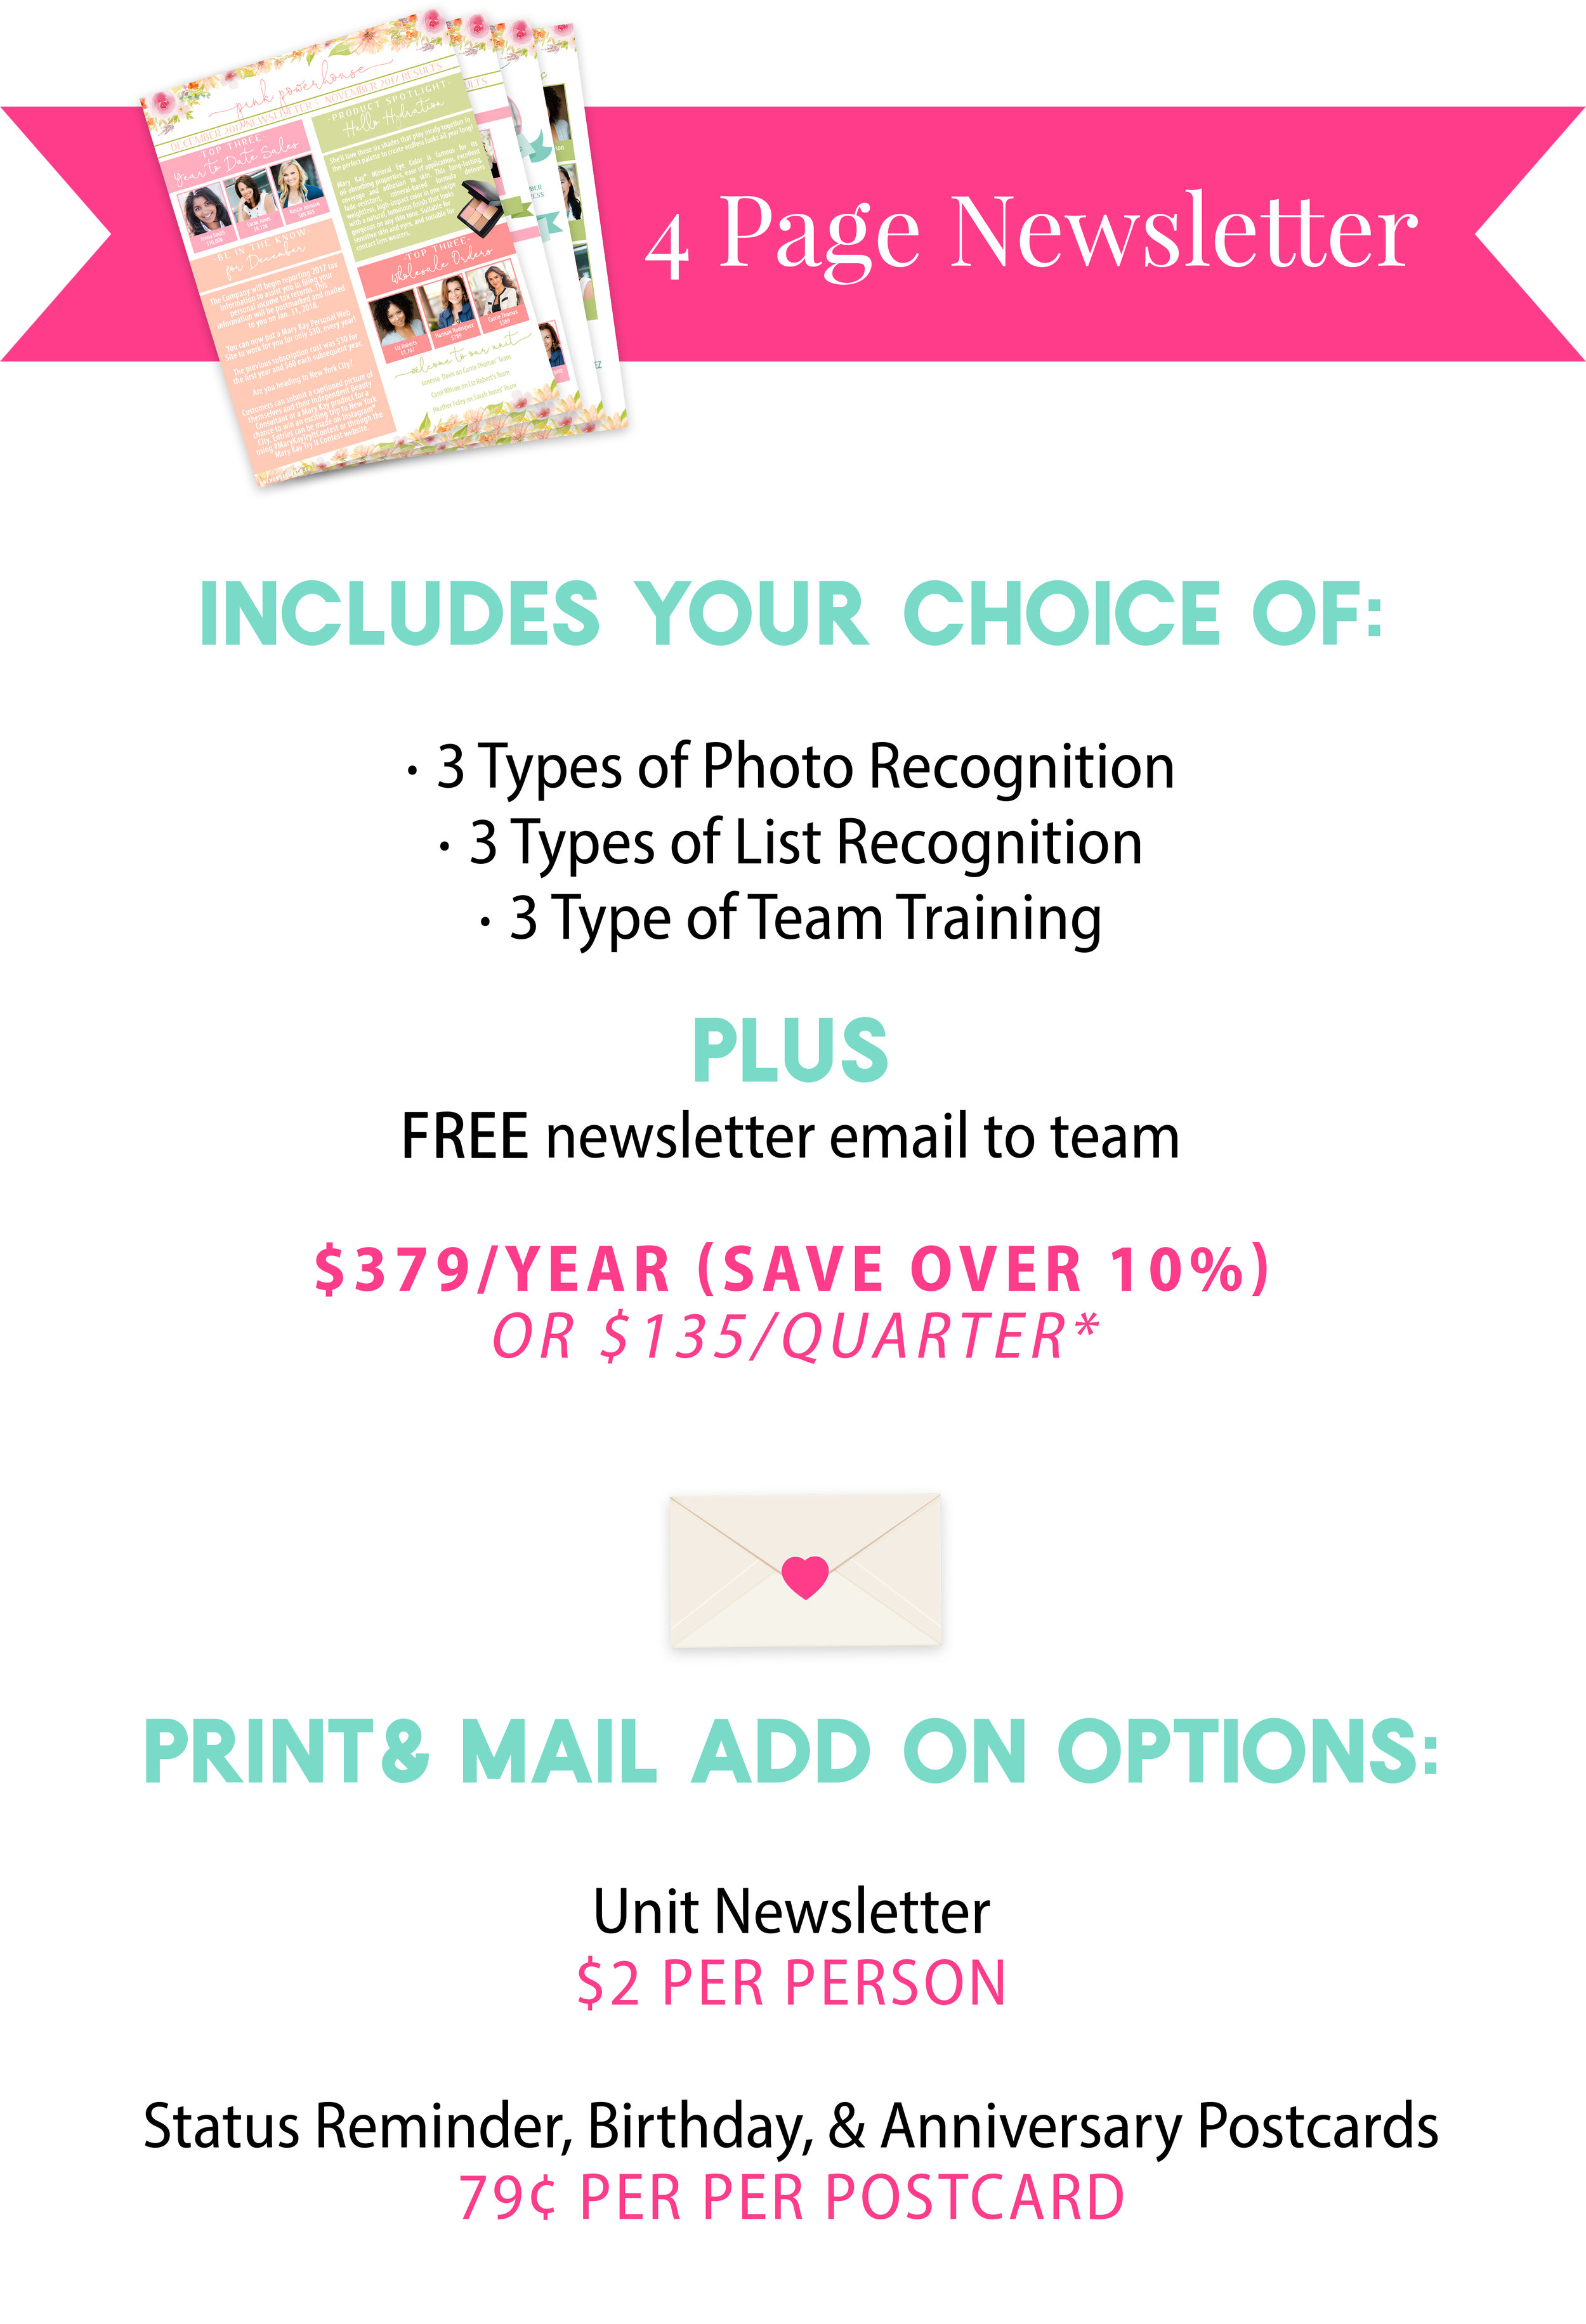 mary kay 4 page unit newsletter for independent sales directors